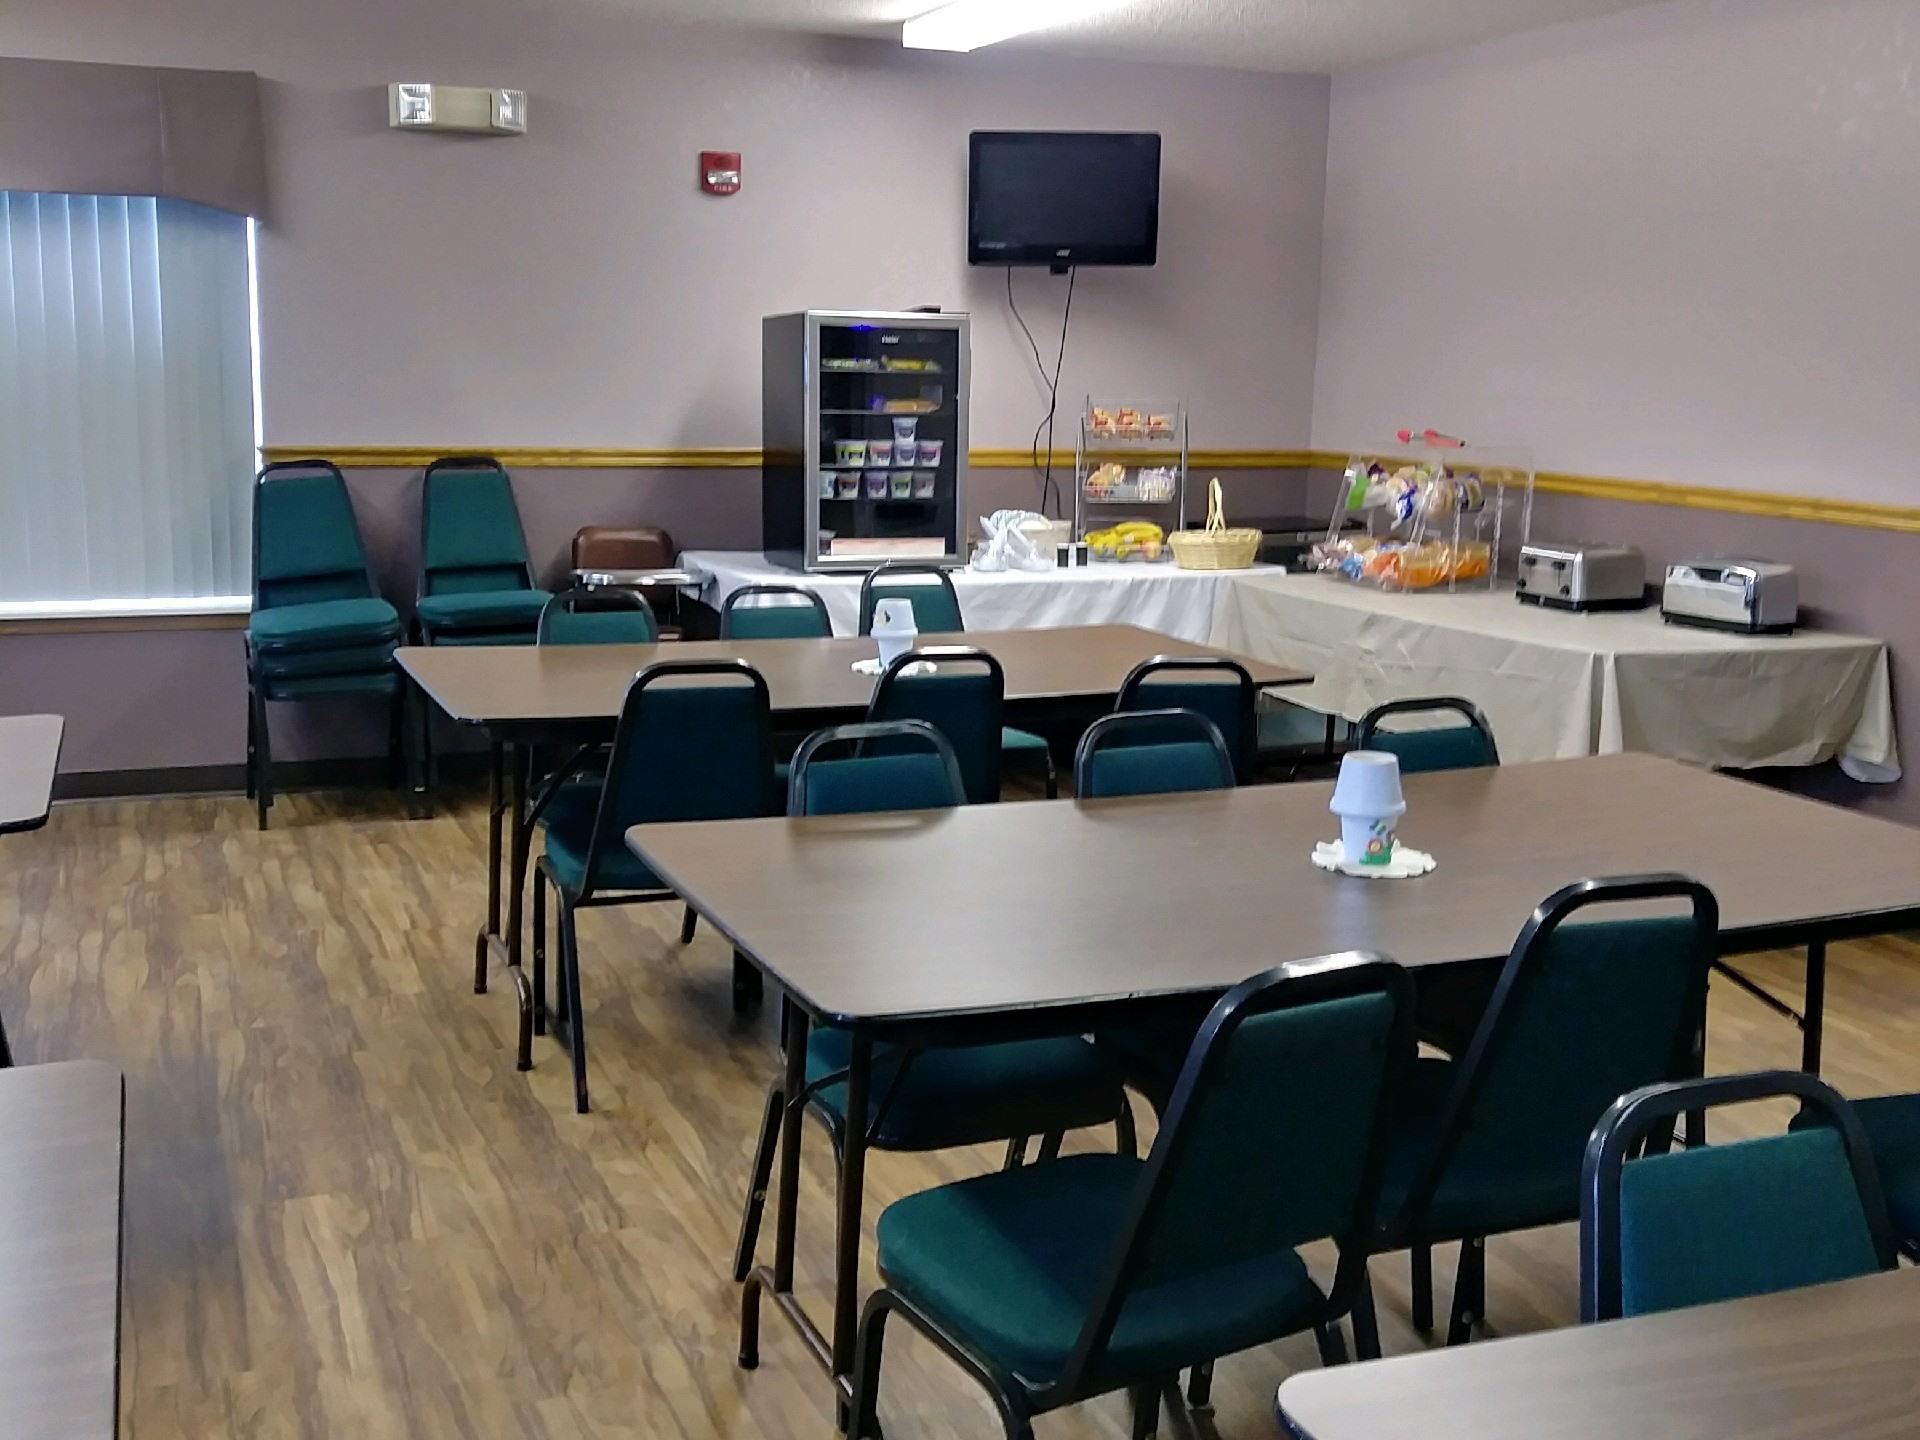 Unit-Ensuite-Standard-Breakfast/Meeting Room